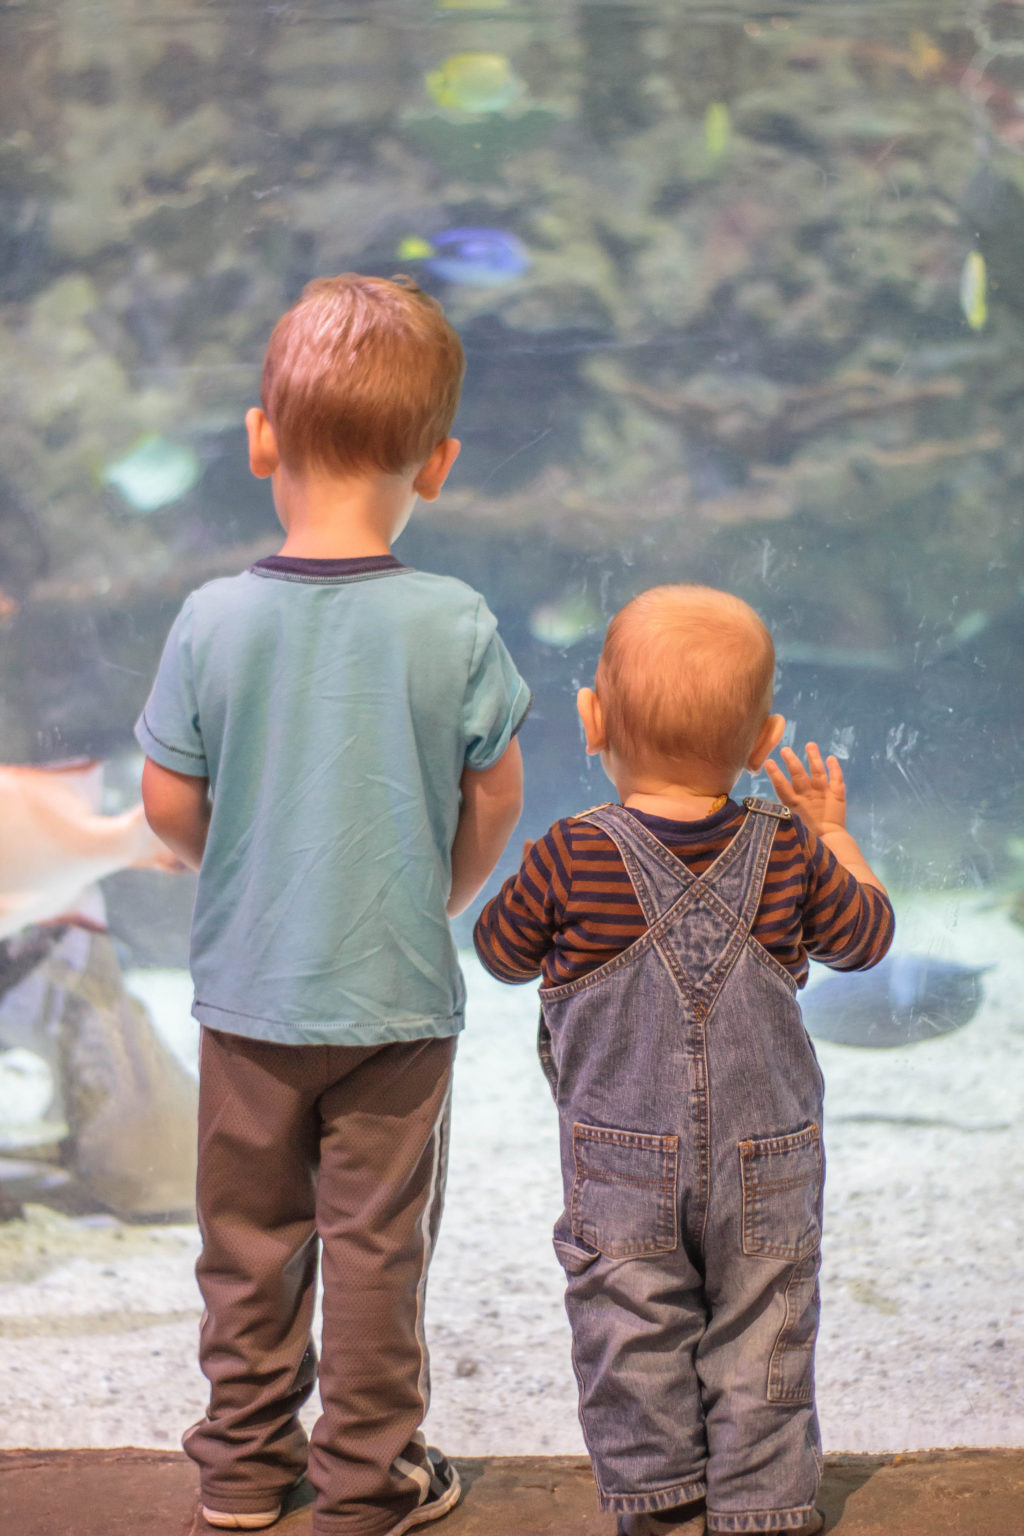 Tips for Visiting the Point Defiance Zoo and Aquarium